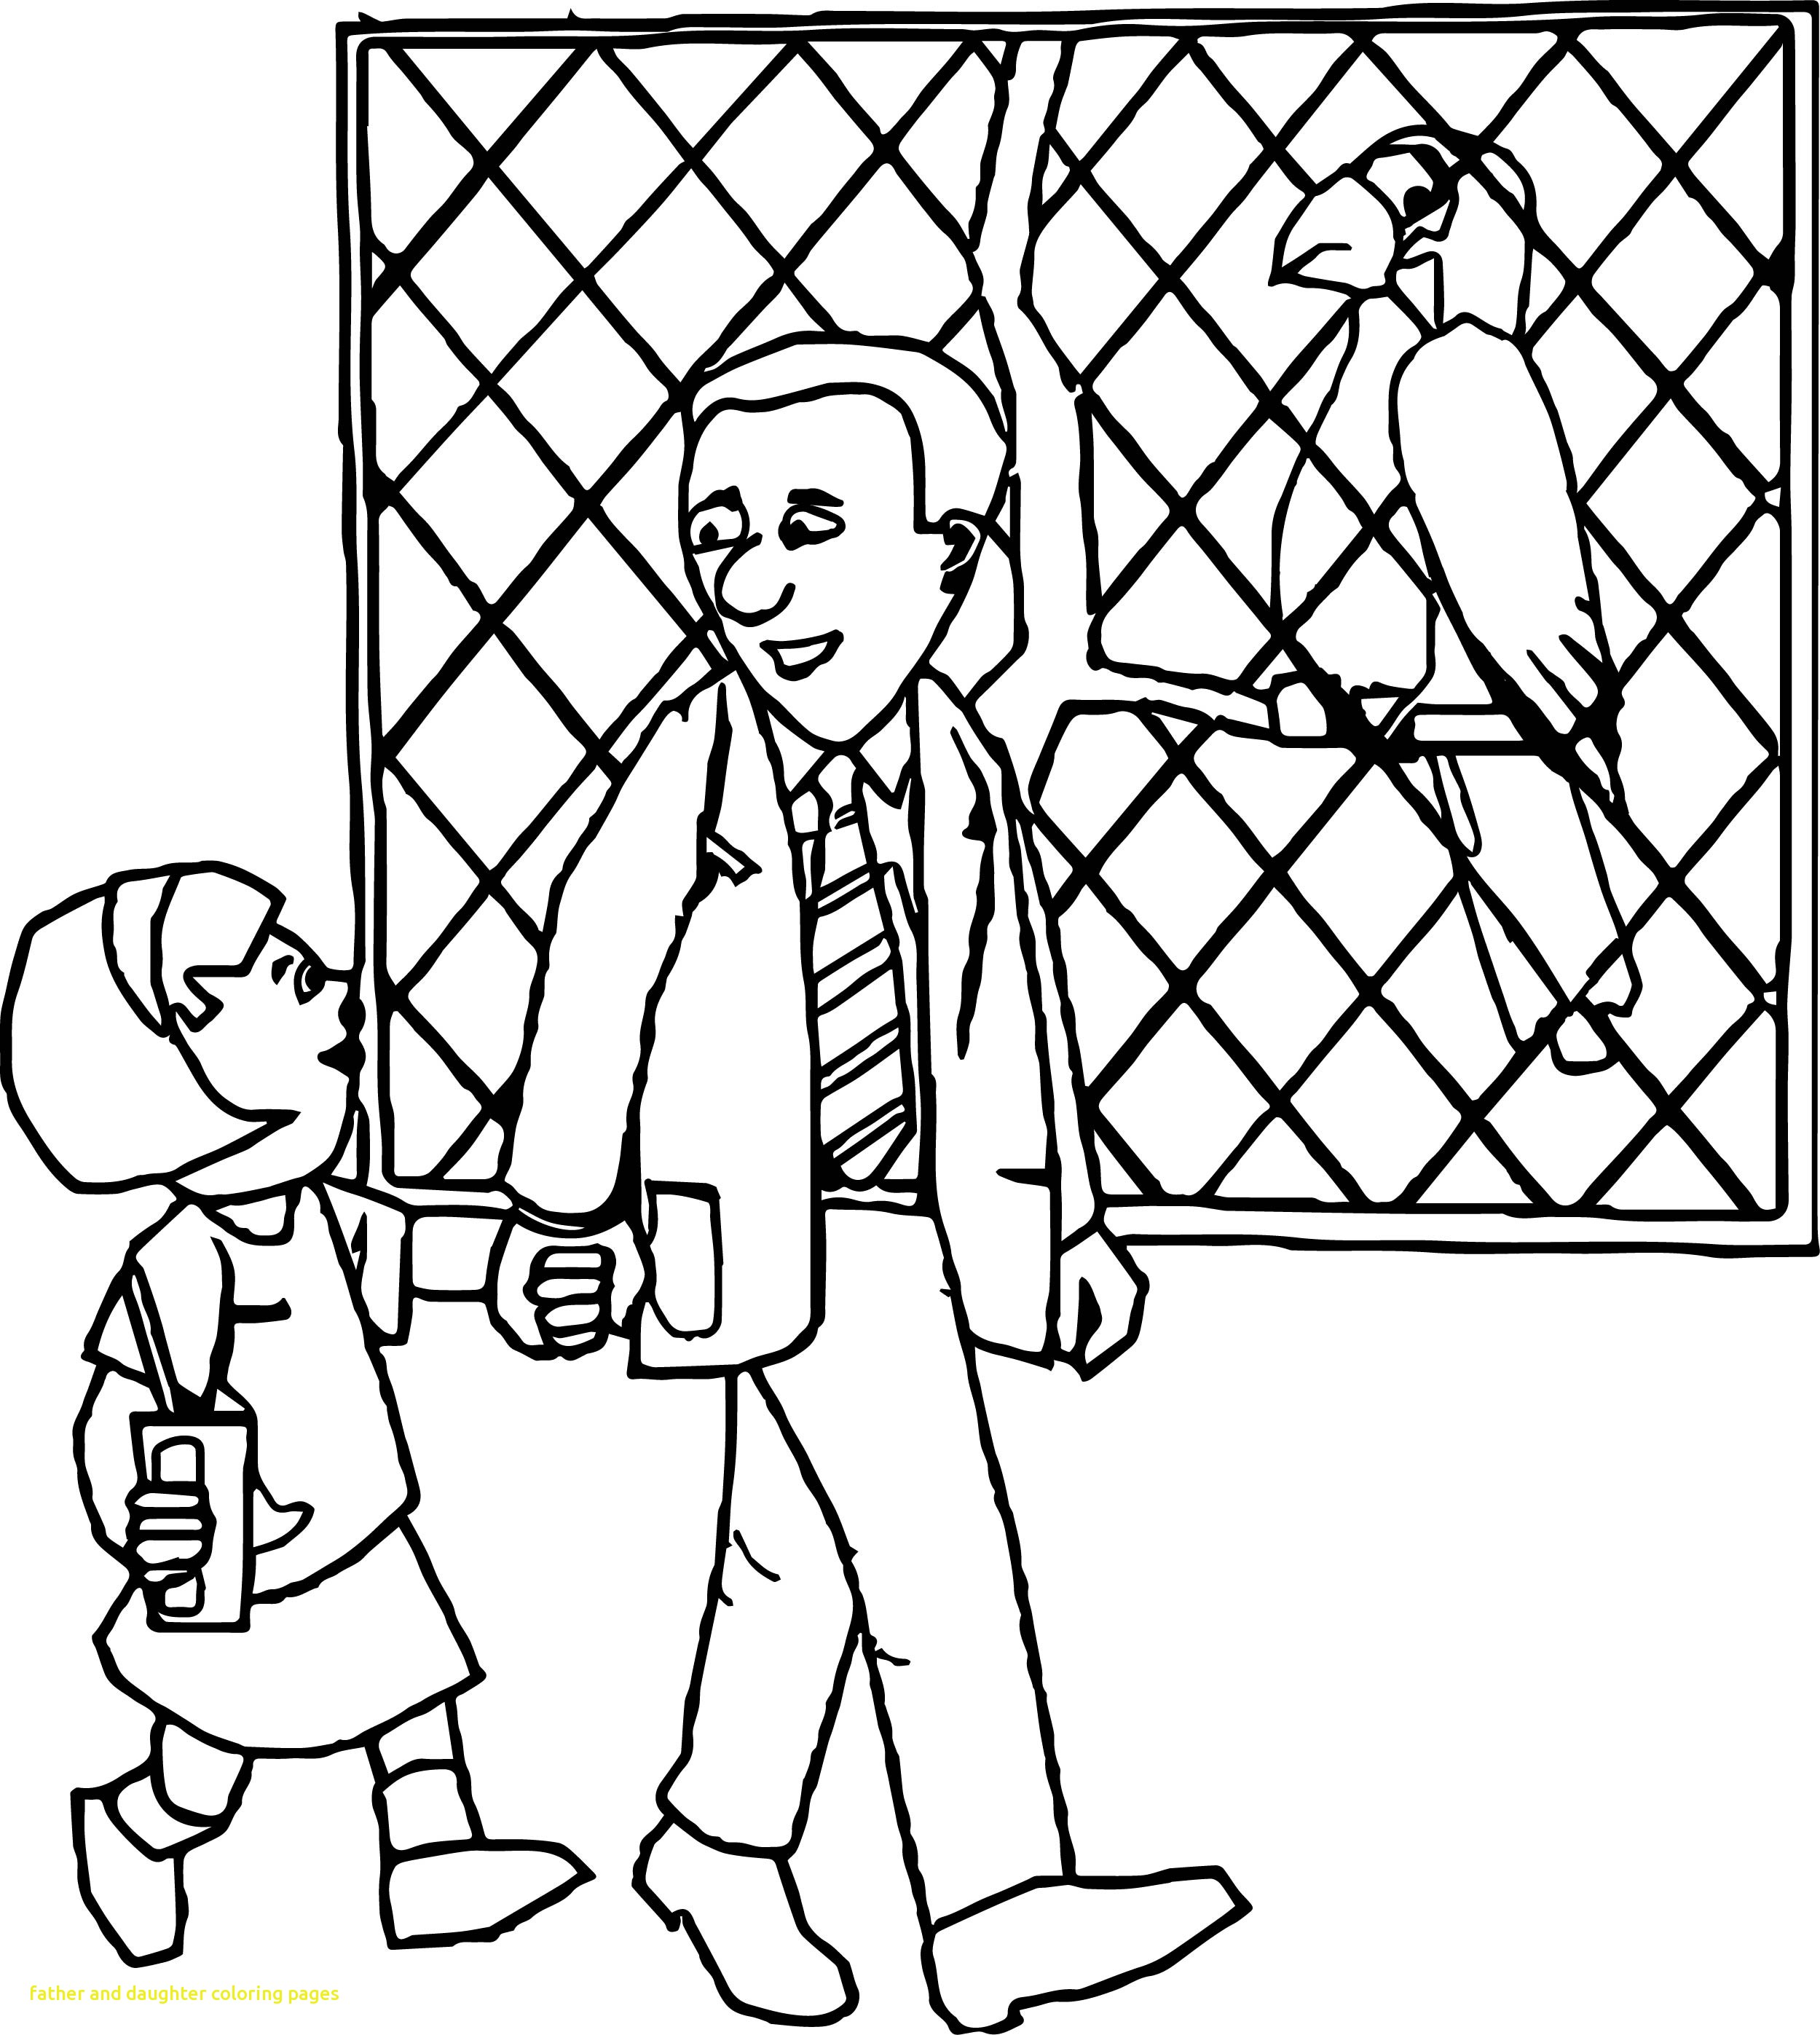 father and daughter coloring pages father and daughter coloring pages at getcoloringscom coloring father and pages daughter